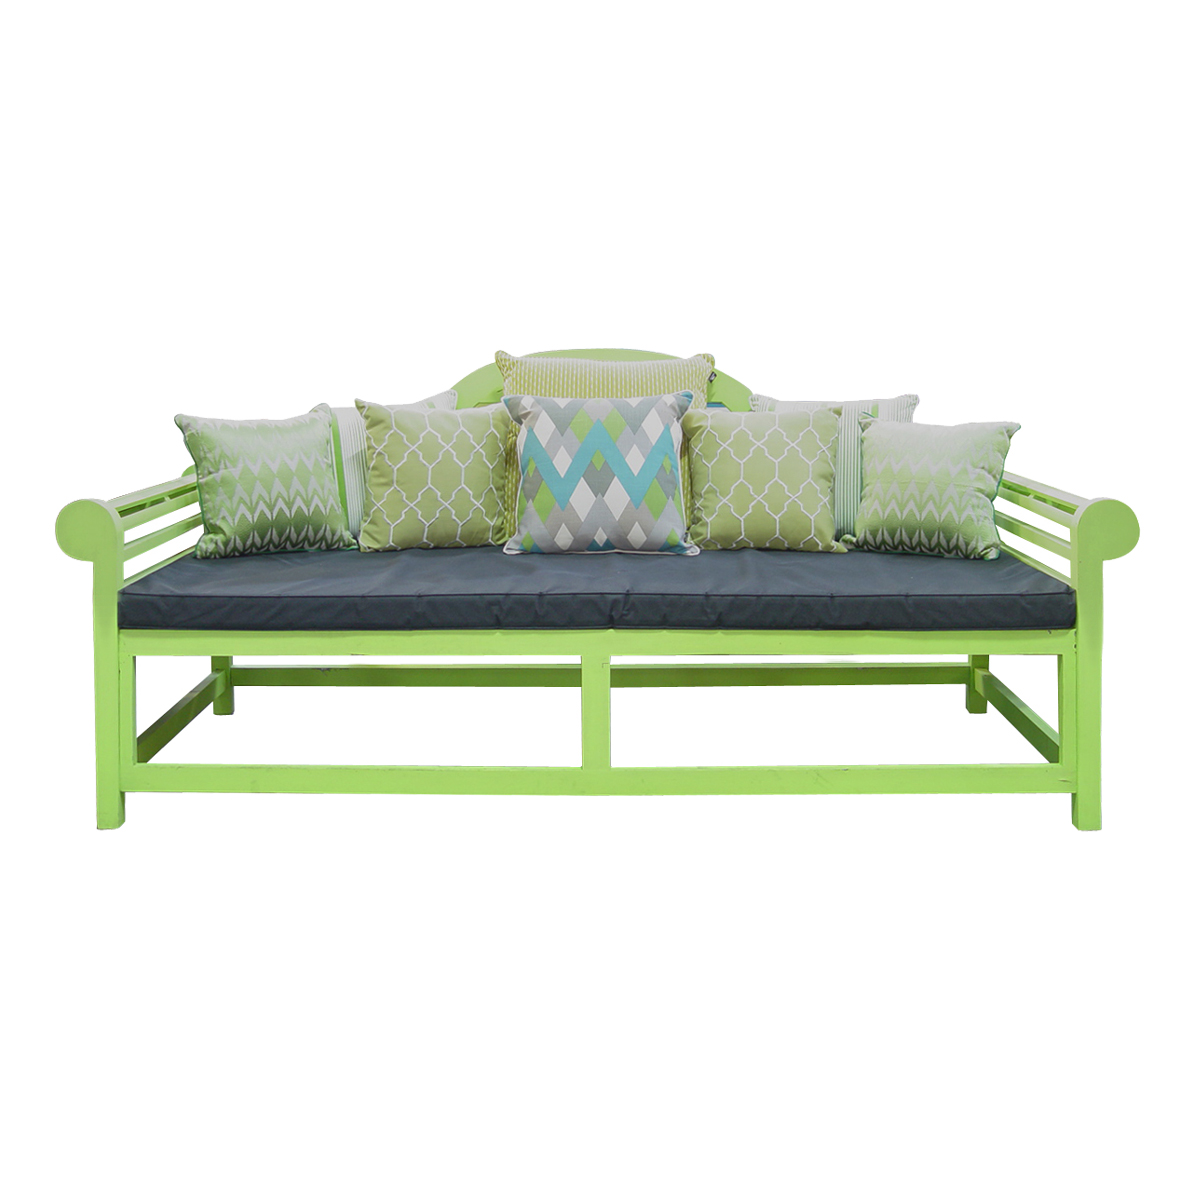 Indoor Amp Outdoor Daybeds For Sale Teak Daybed In Perth